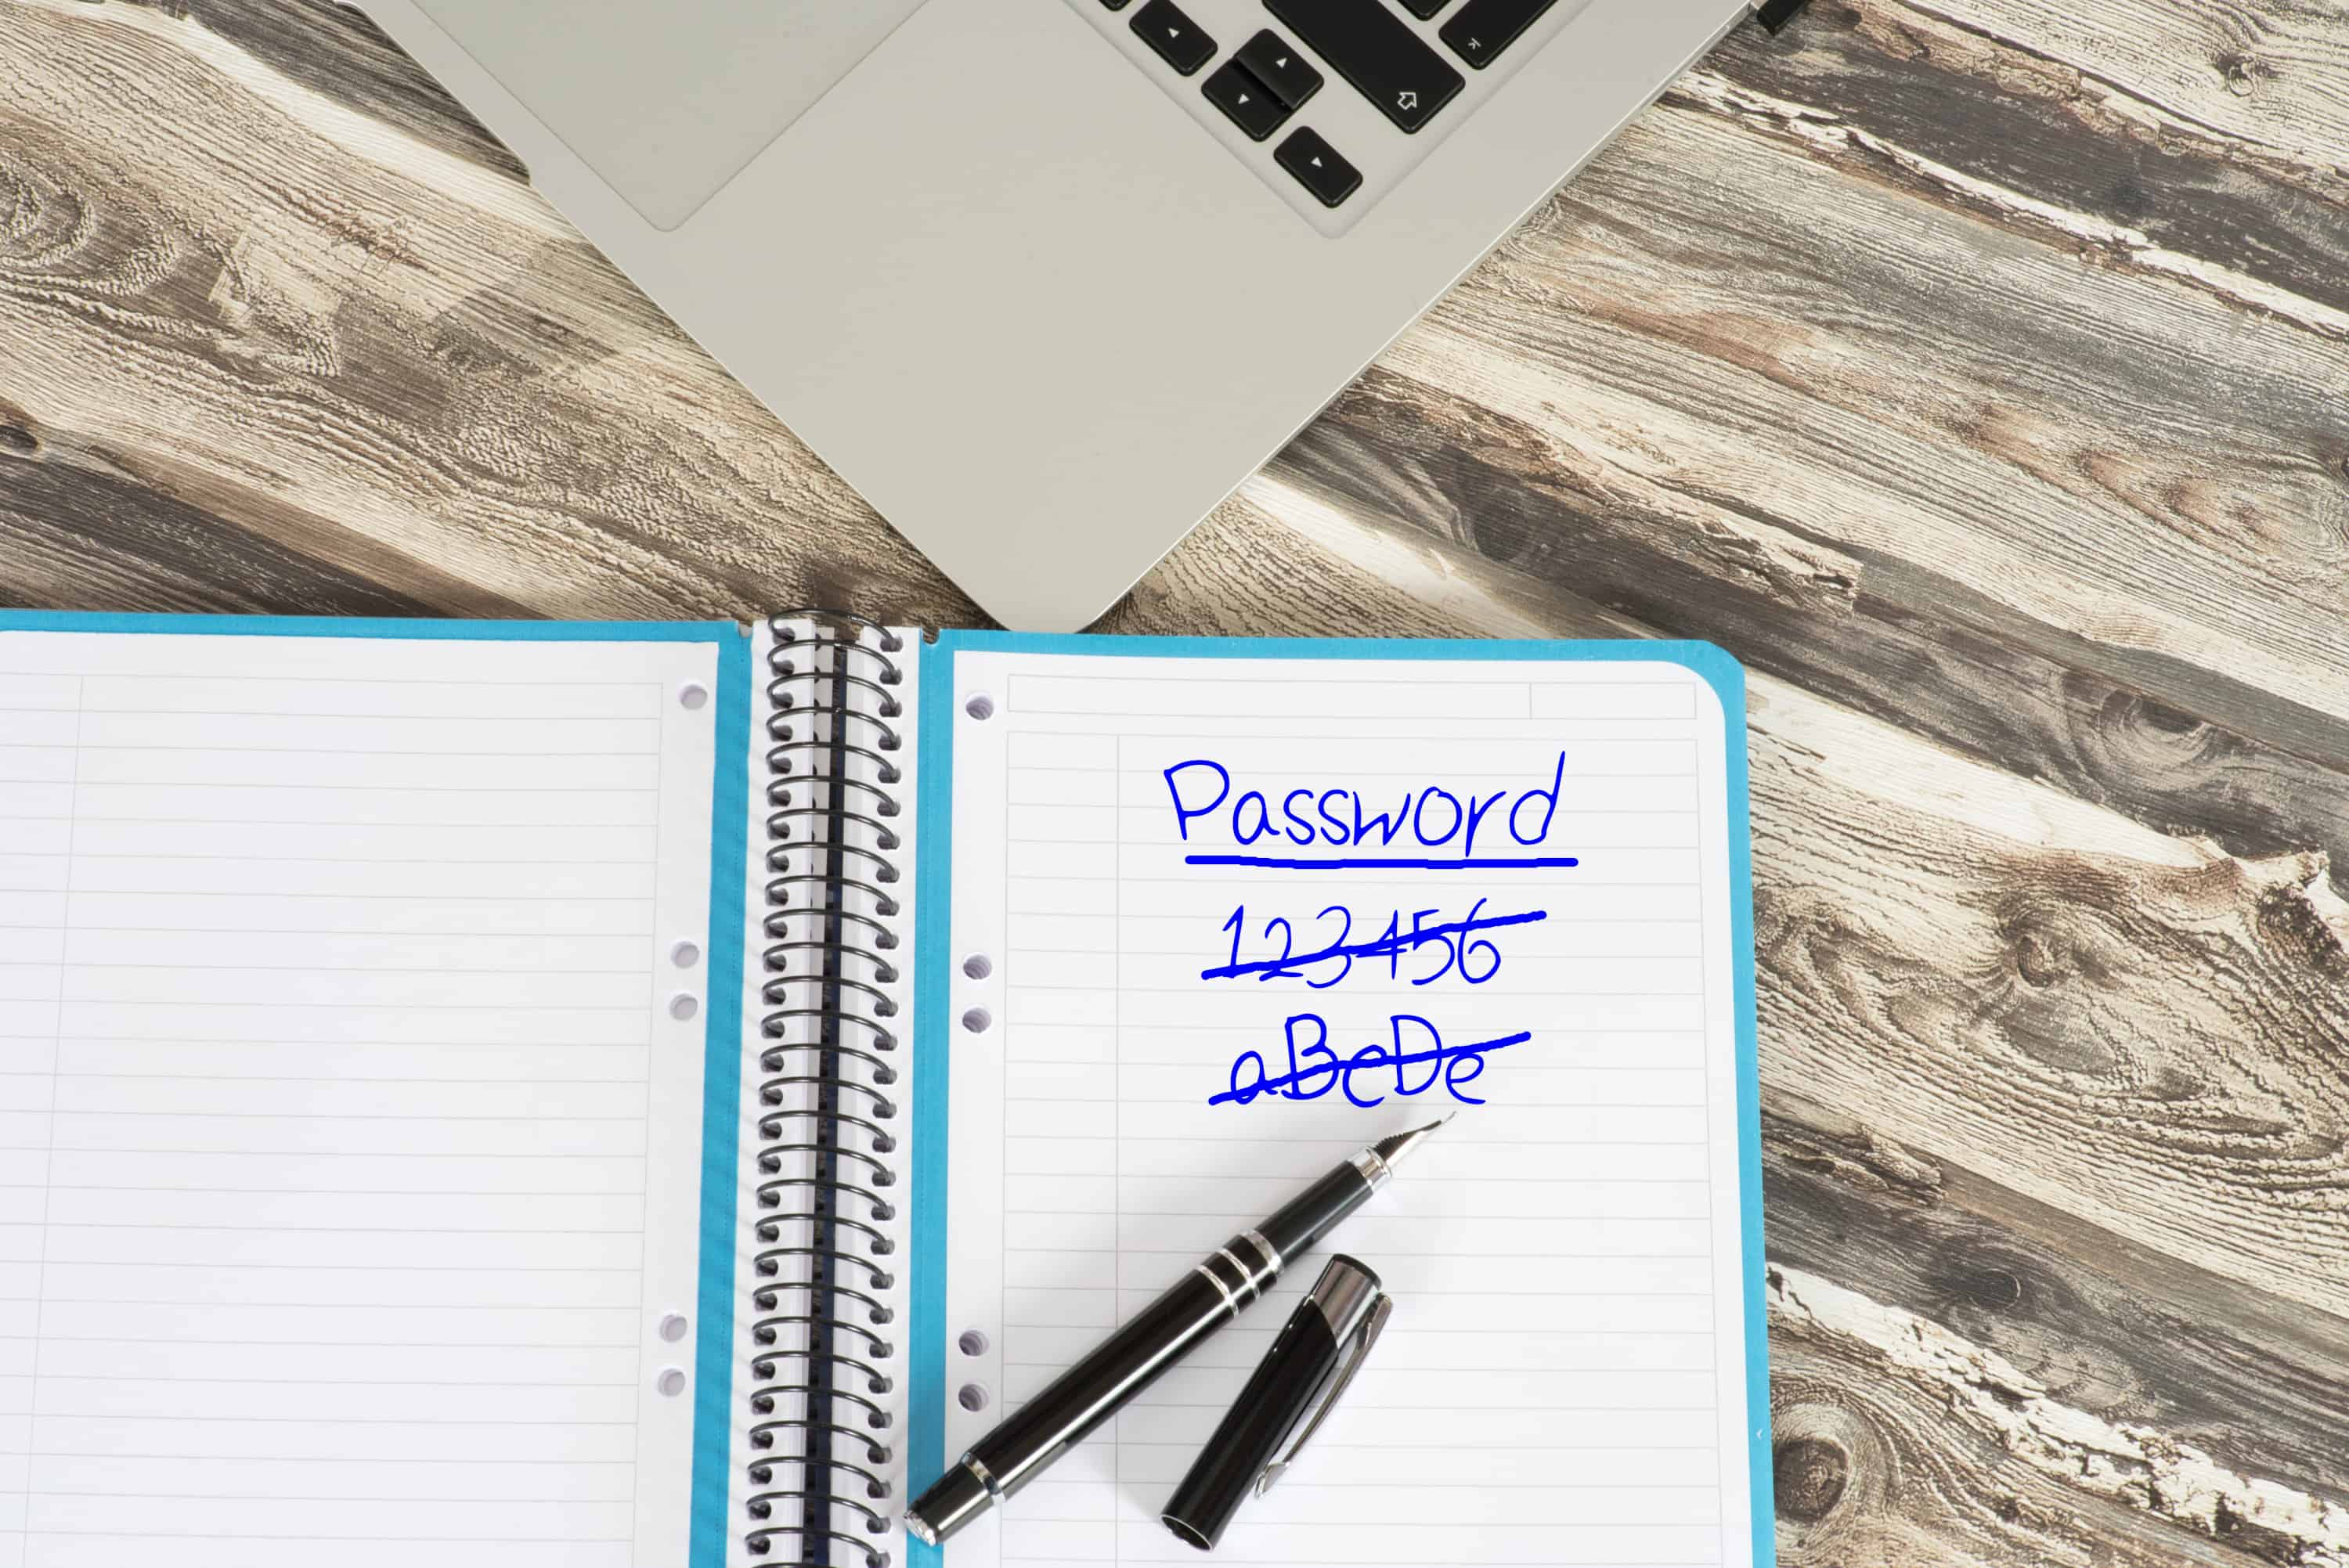 Passwords written and crossed out with a blue ink fountain pen in a notebook--could really use Lastpass password manager.